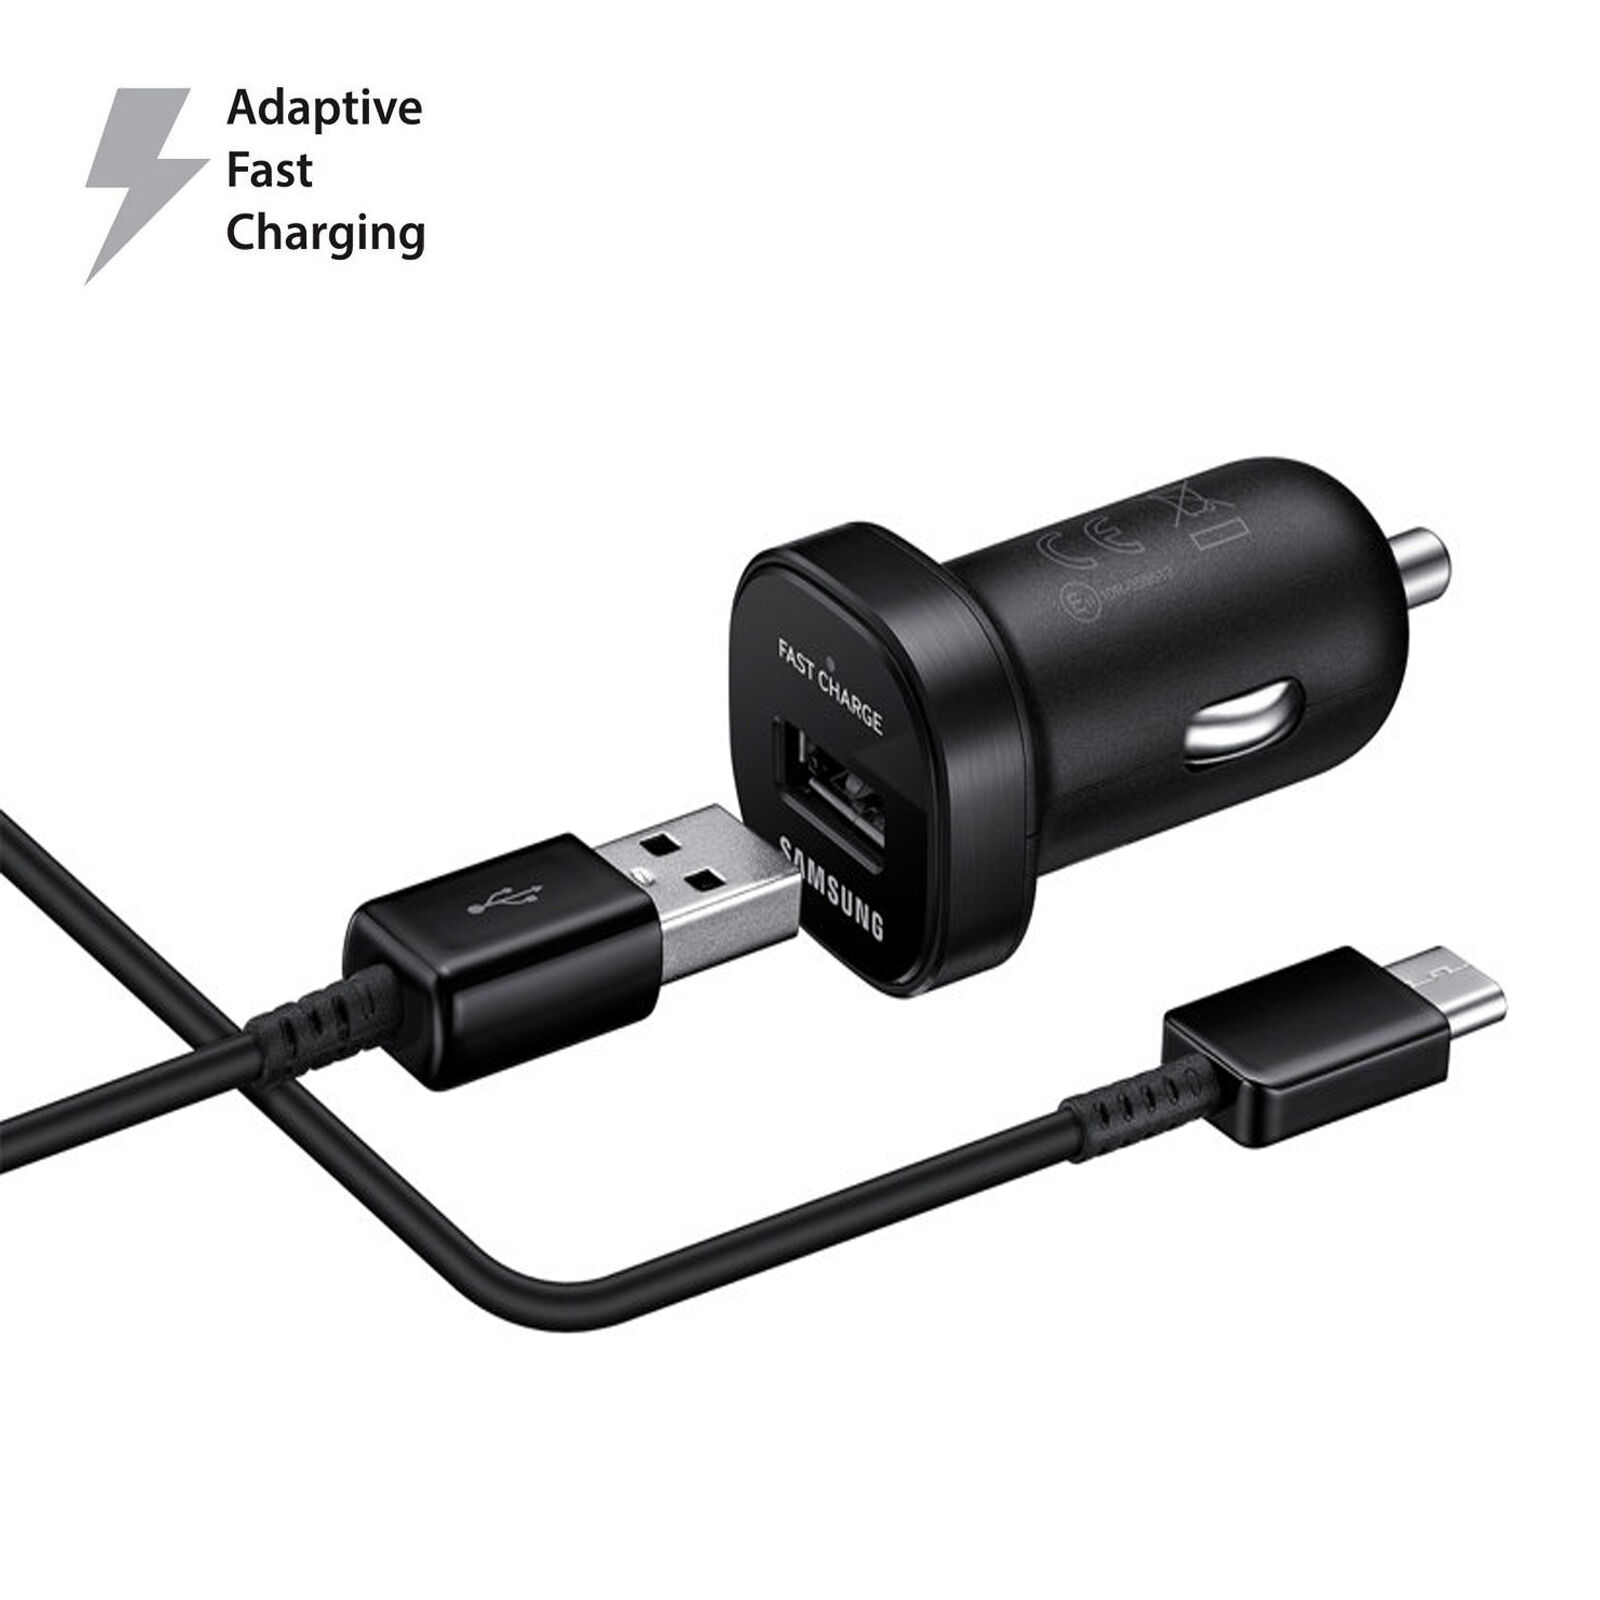 OEM Samsung Fast USB Car Charger For Galaxy S9 S9+ S8/S8 Plus + USB Type-C Cable Samsung EP-LN920BBEGUS - фотография #2